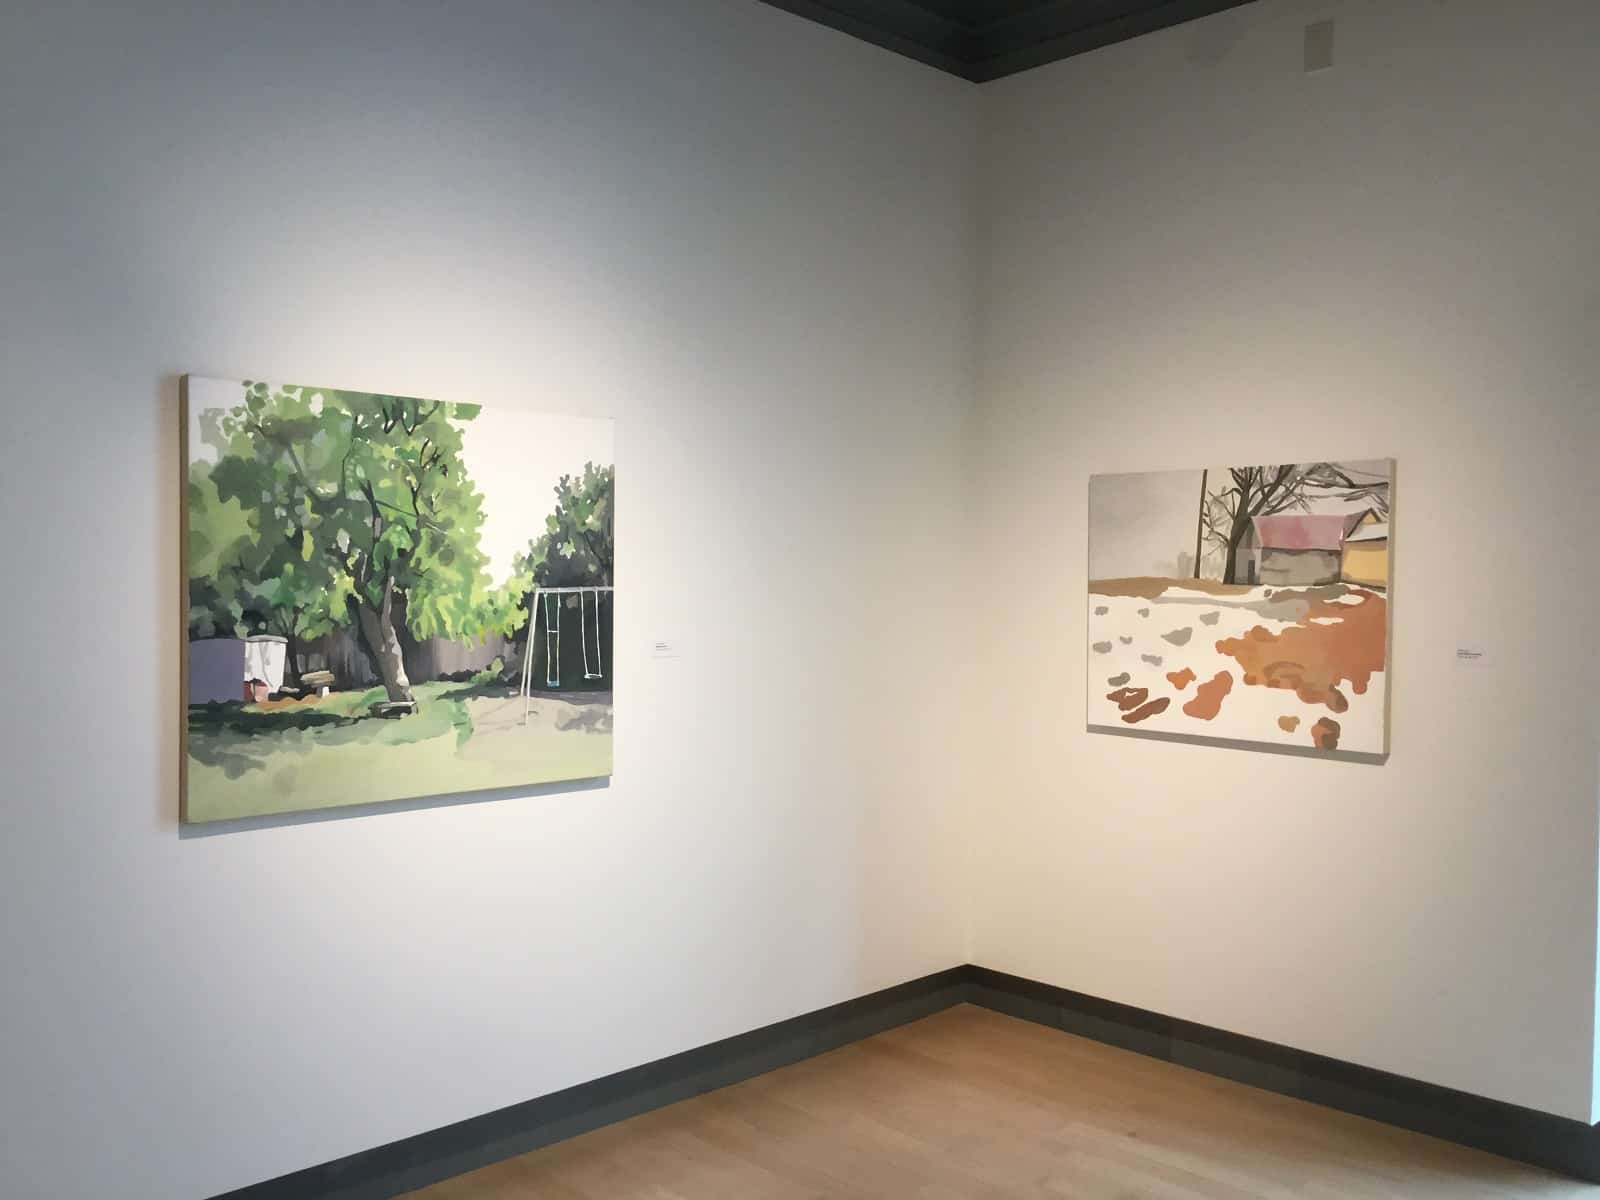 Two paintings from a show of Sheila Miles's work at the Missoula Art Museum in Montana last year